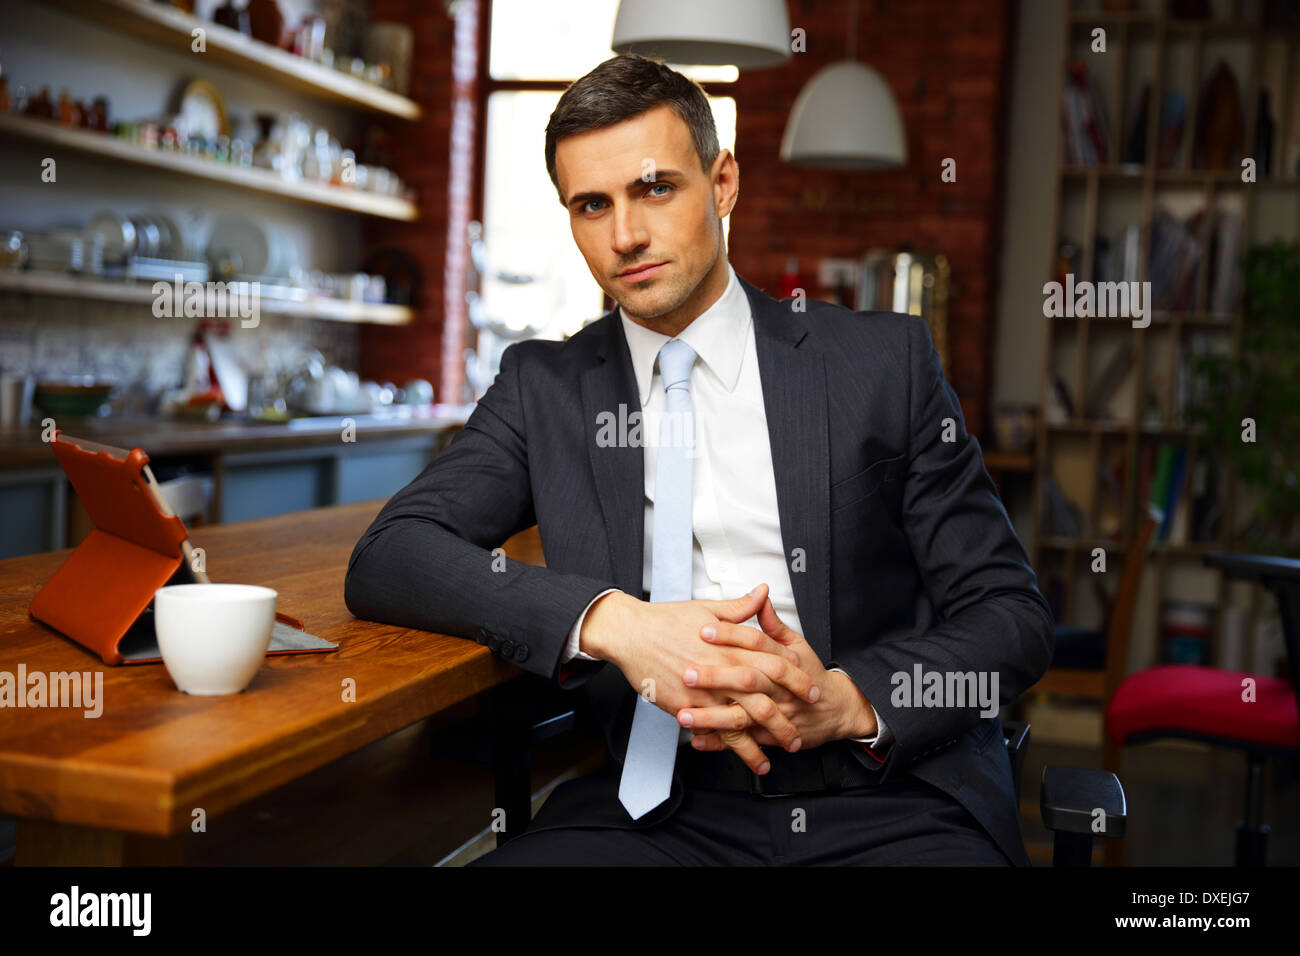 Confident businessman in formal cloths drinking coffee and reading news in the kitchen - Stock Image